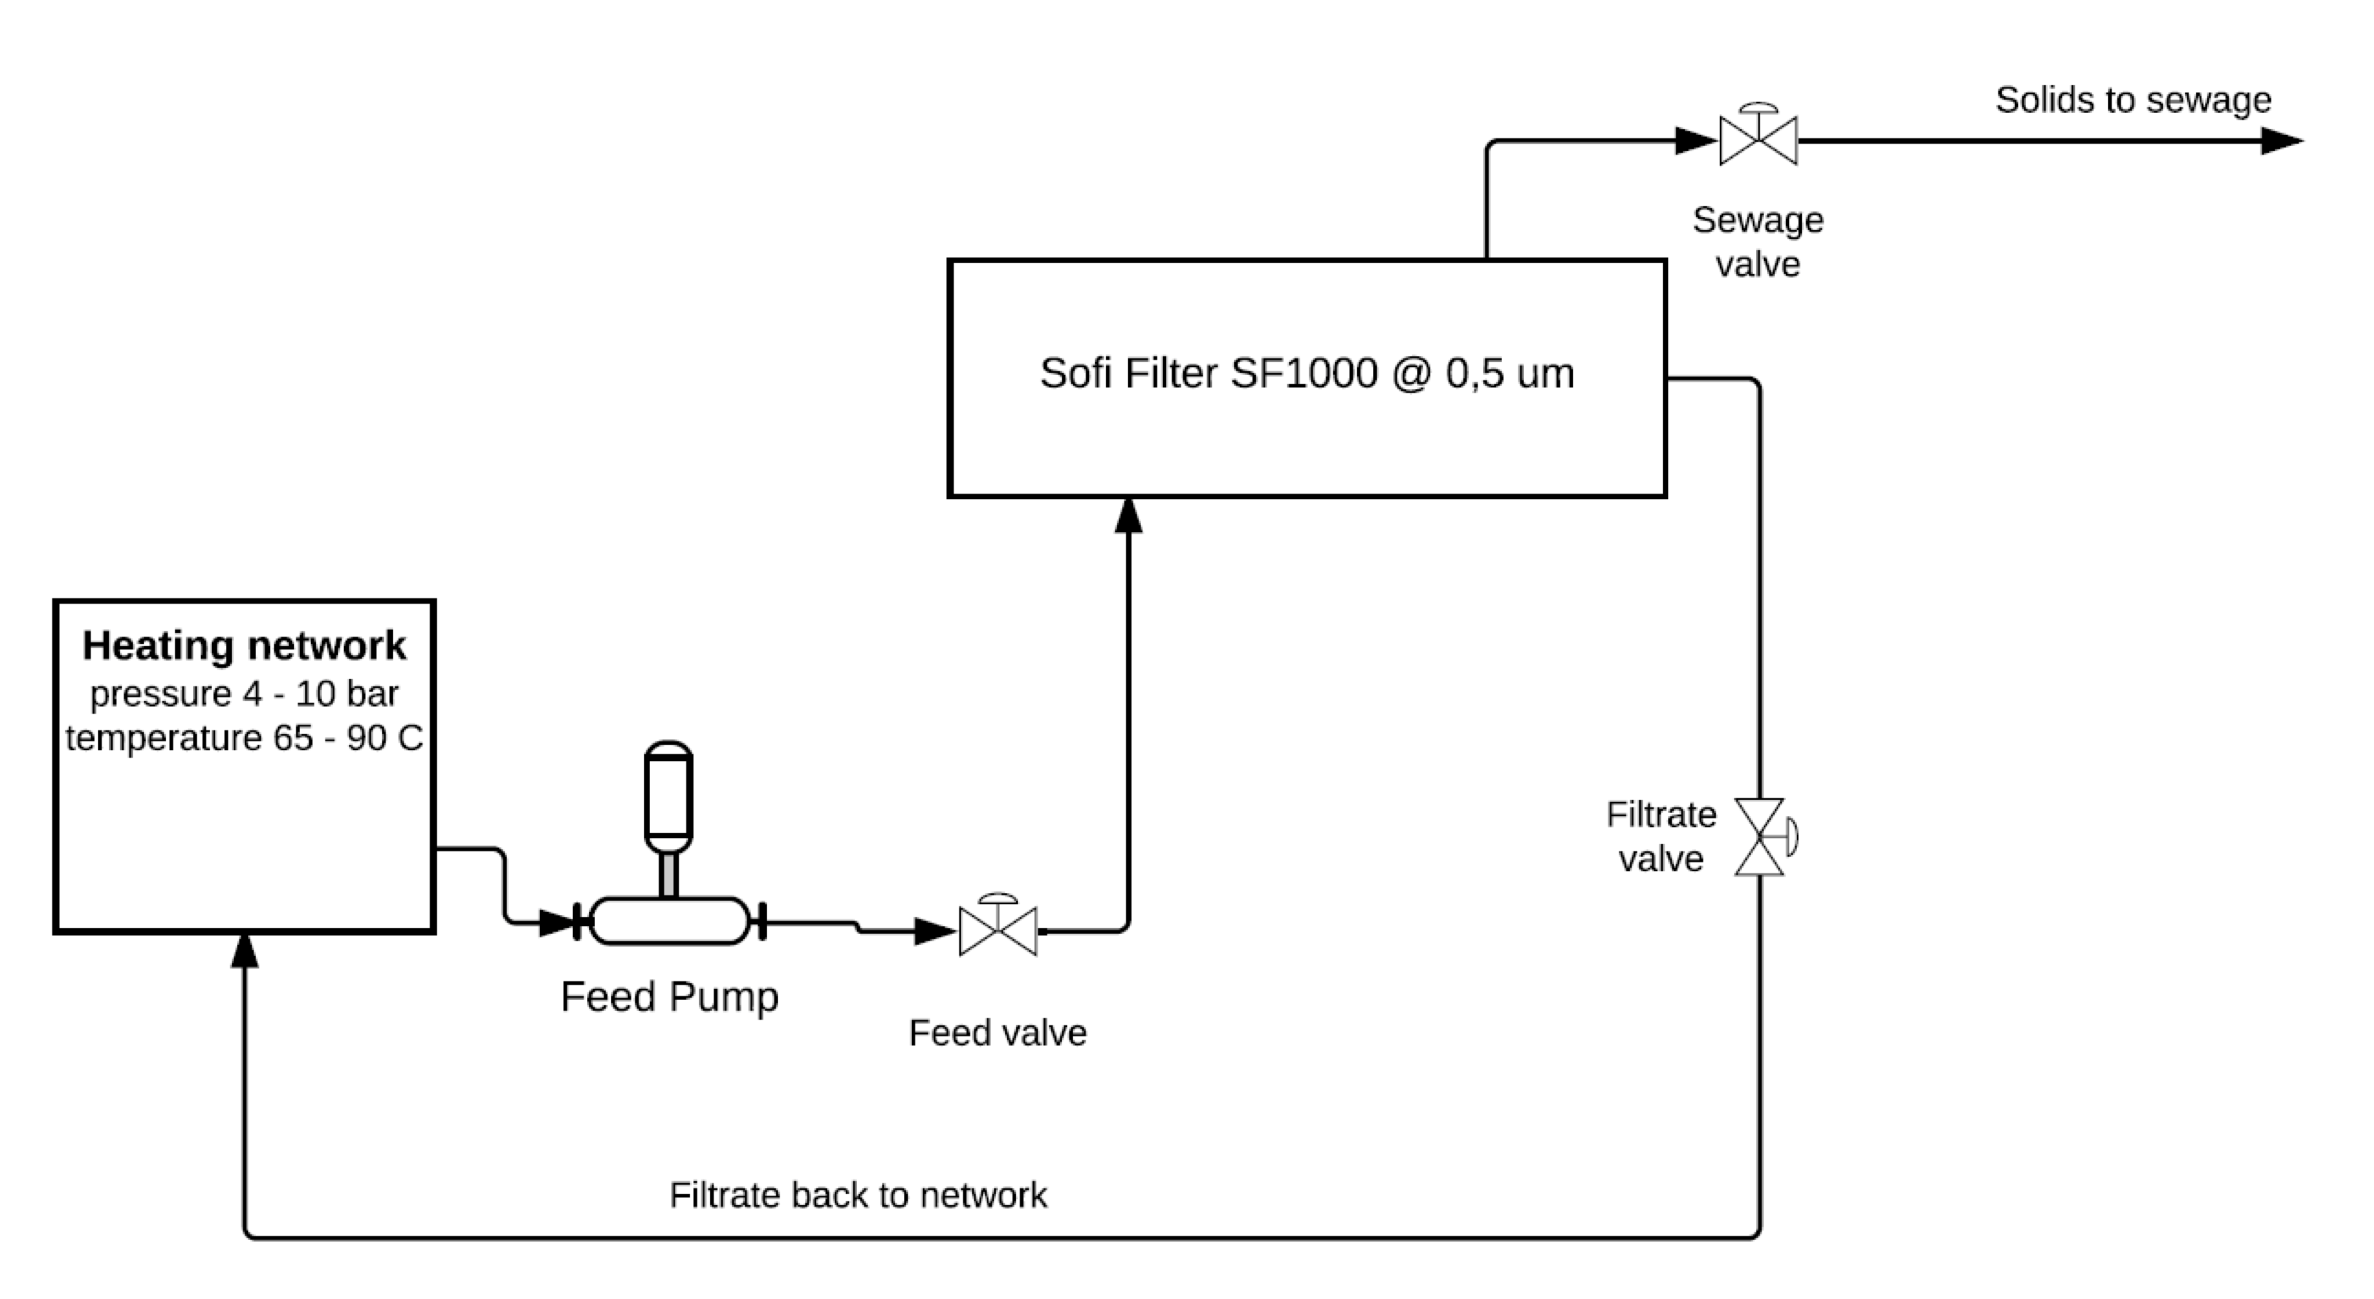 Sofi Filter Process Flowsheets - Industrial power.png